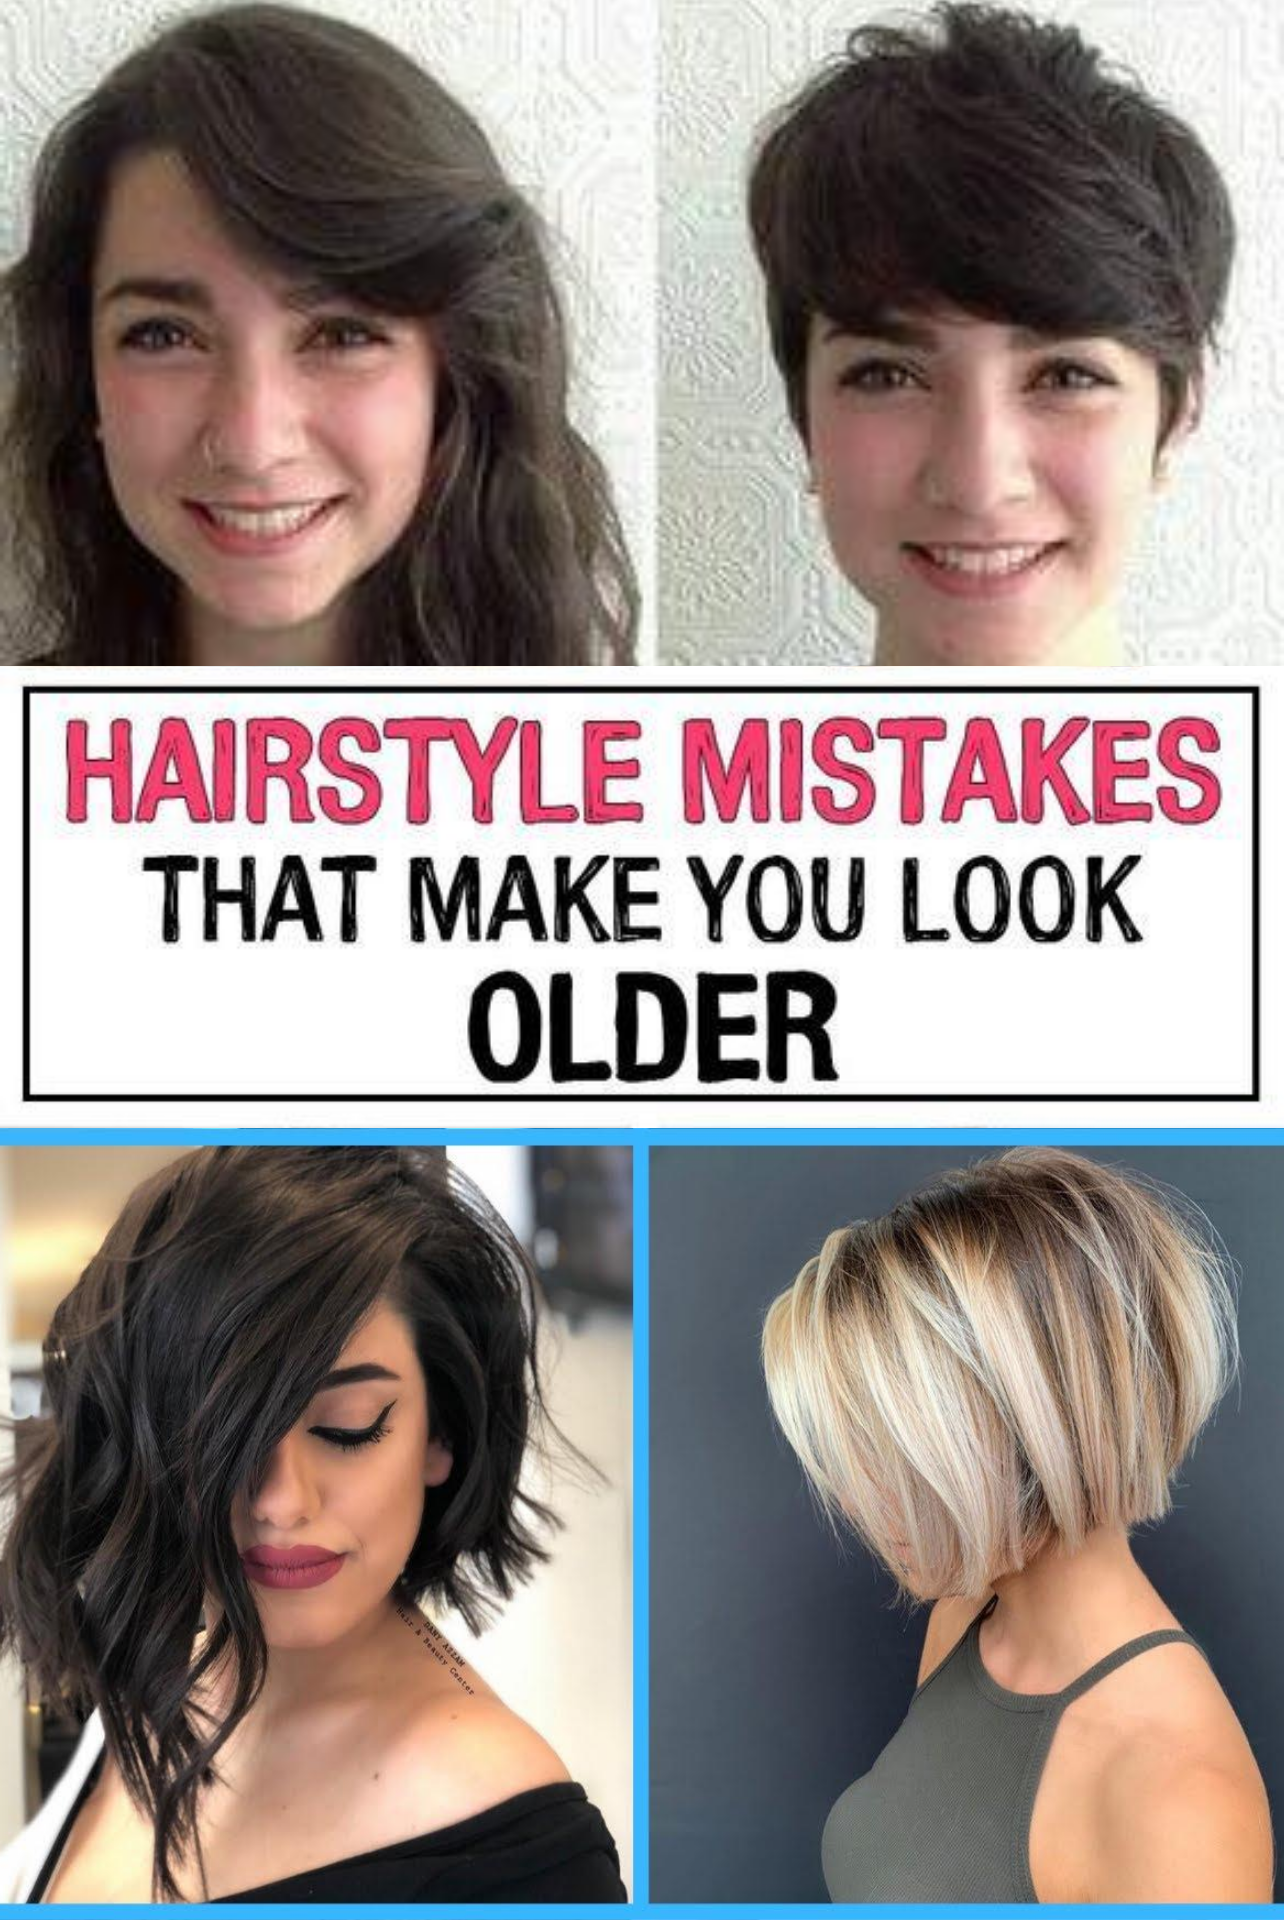 11 Hairstyle Mistakes That Are Aging You In 2020 Hairstyle Hair Mistakes Hair Advice